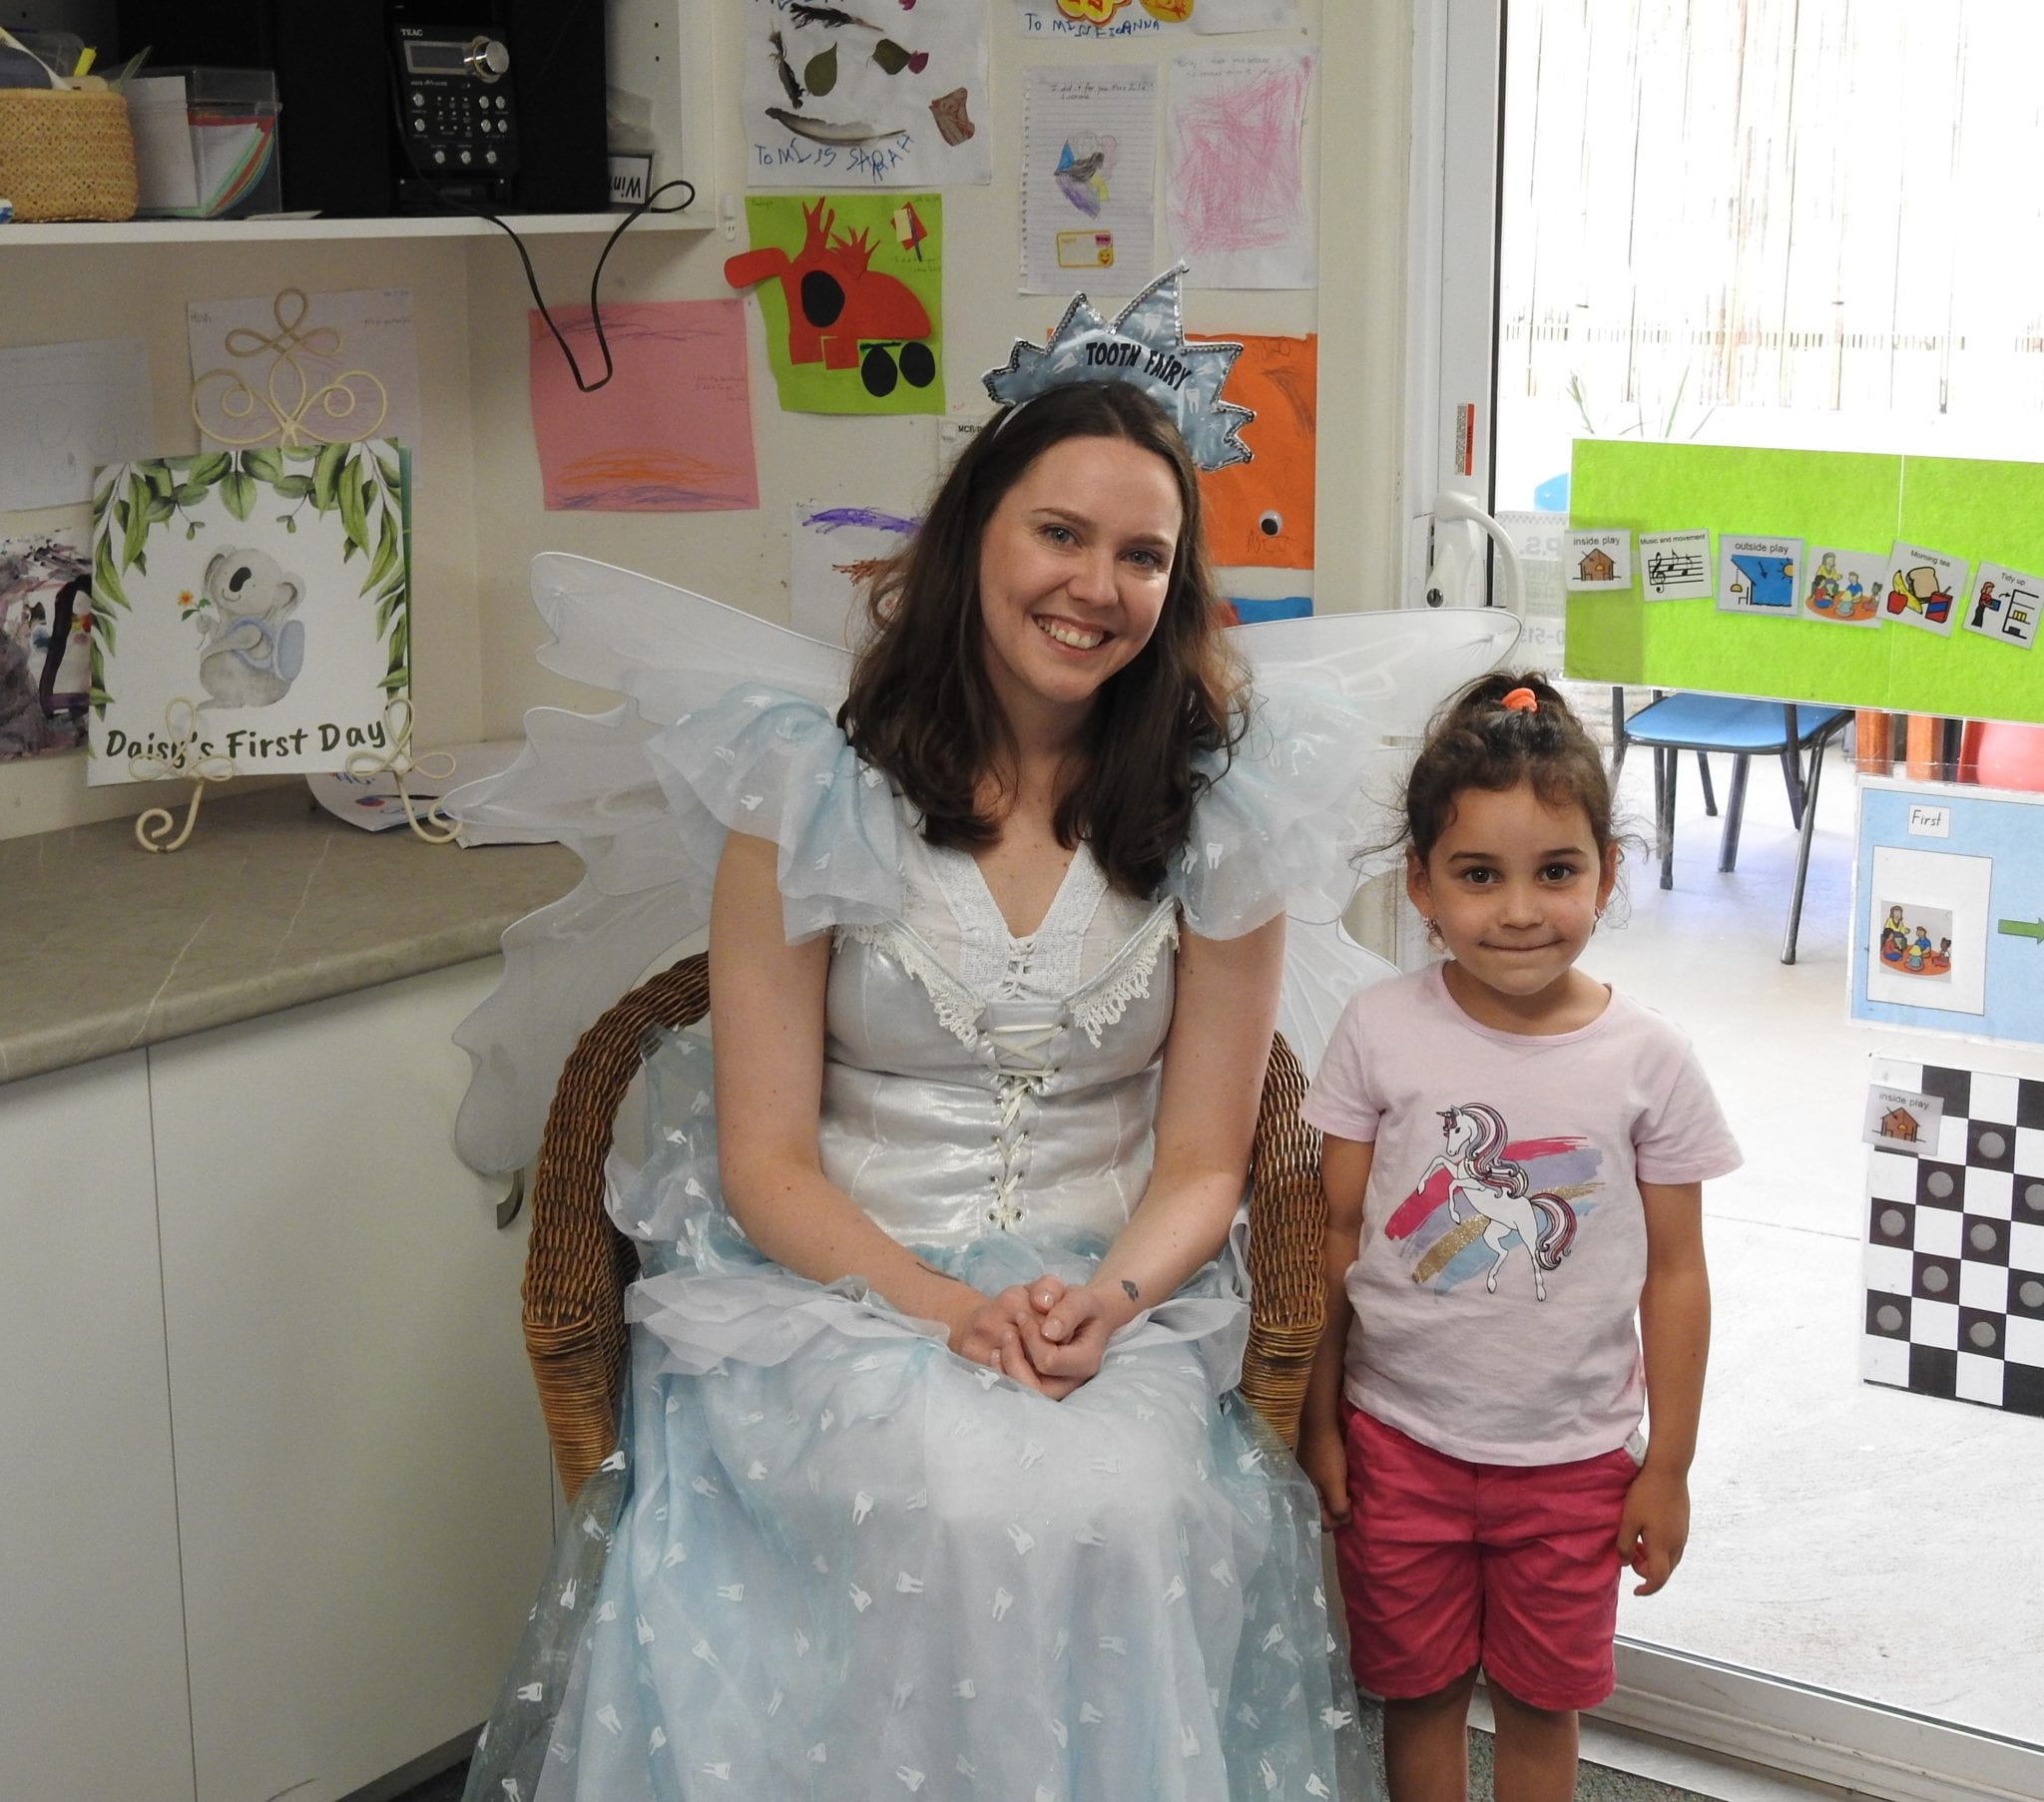 Campbelltown Family Dental Care Campbelltown Preschool visit 2020 Tooth Fairy